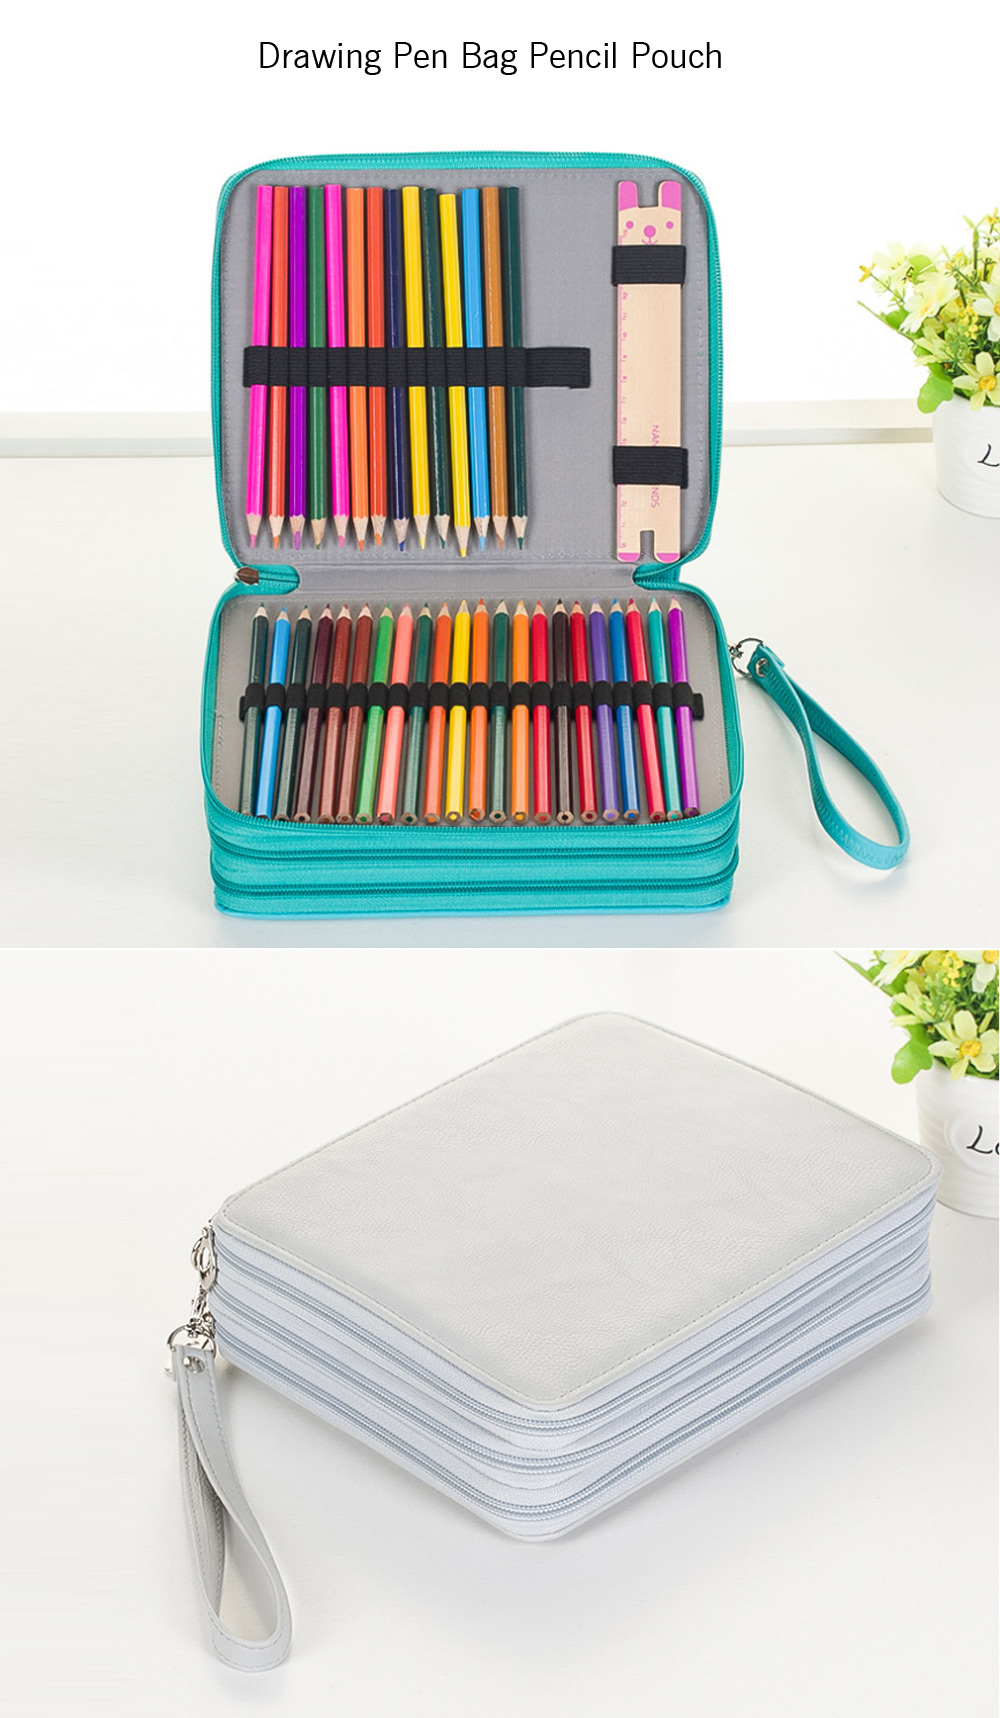 Drawing Pen Bag Pencil Pouch with Big Capacity